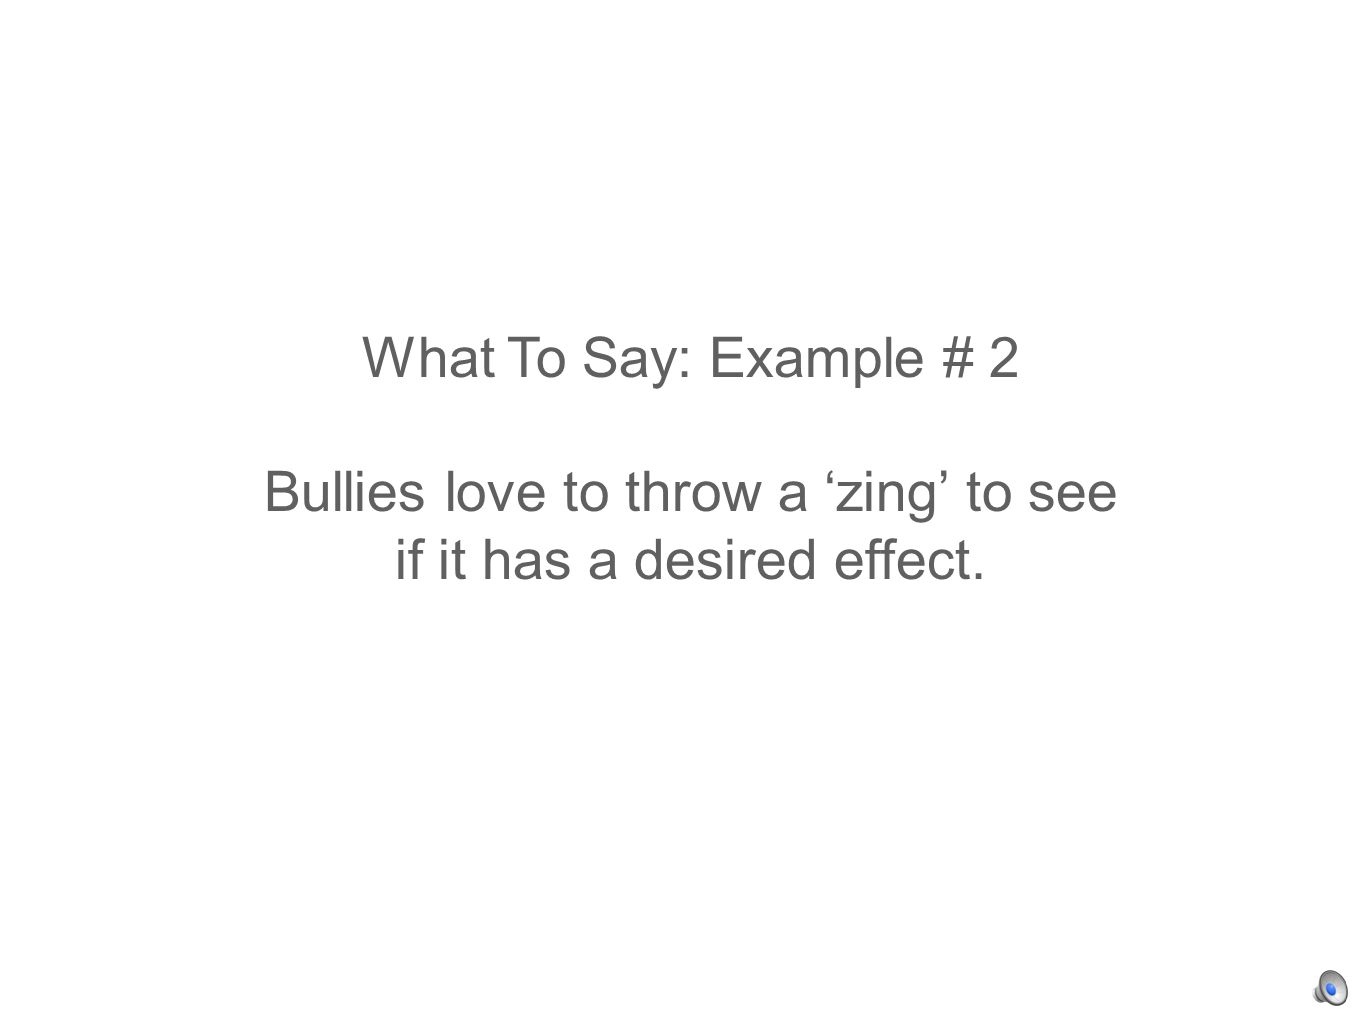 What To Say: Example # 2 Bullies love to throw a zing to see if it has a desired effect.